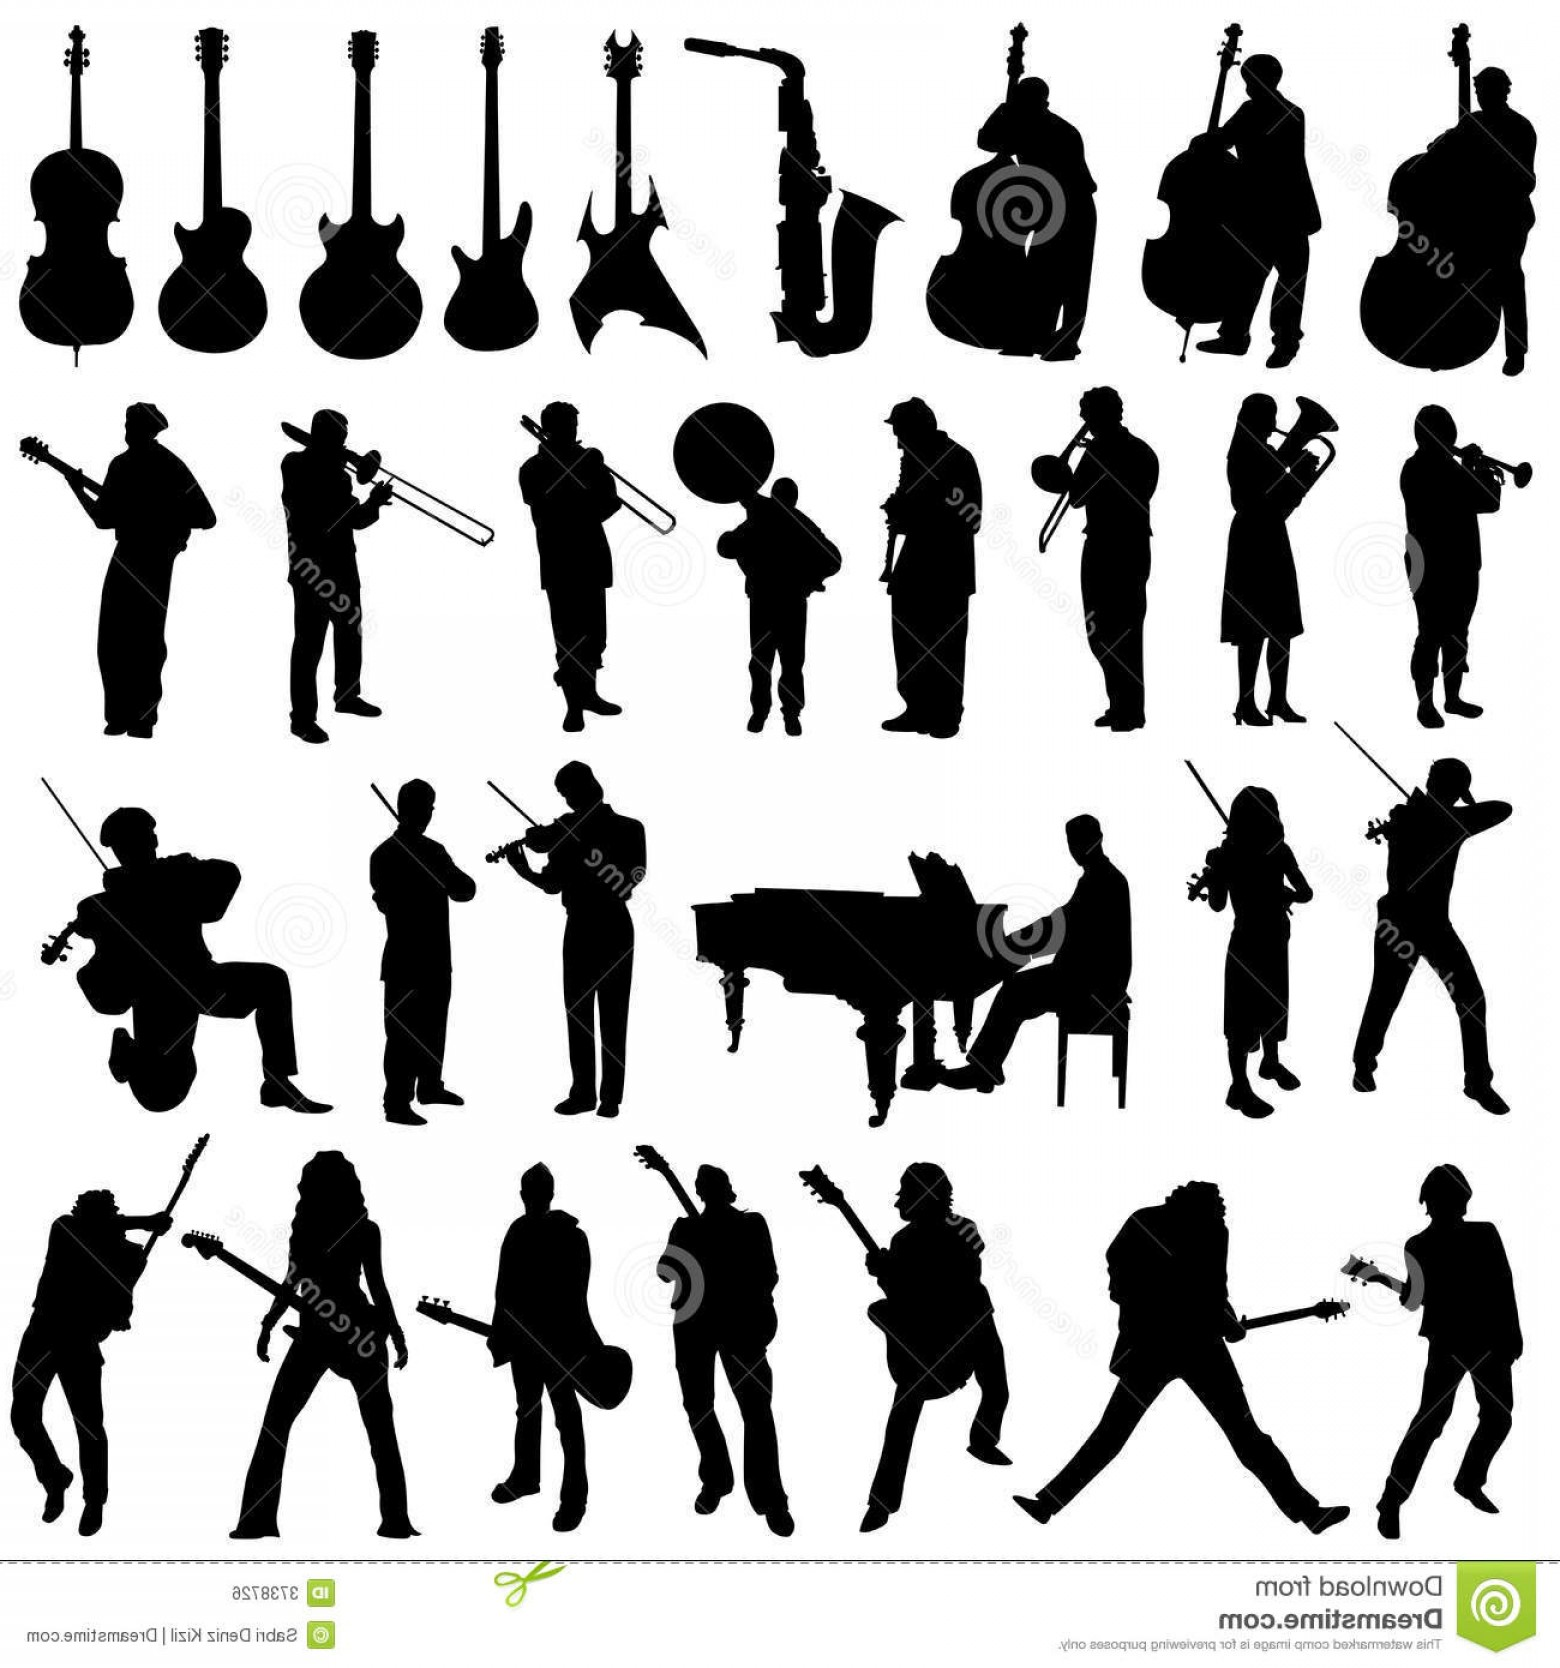 Musician Person Vector: Royalty Free Stock Image Collection Musician Music Object Vector Image